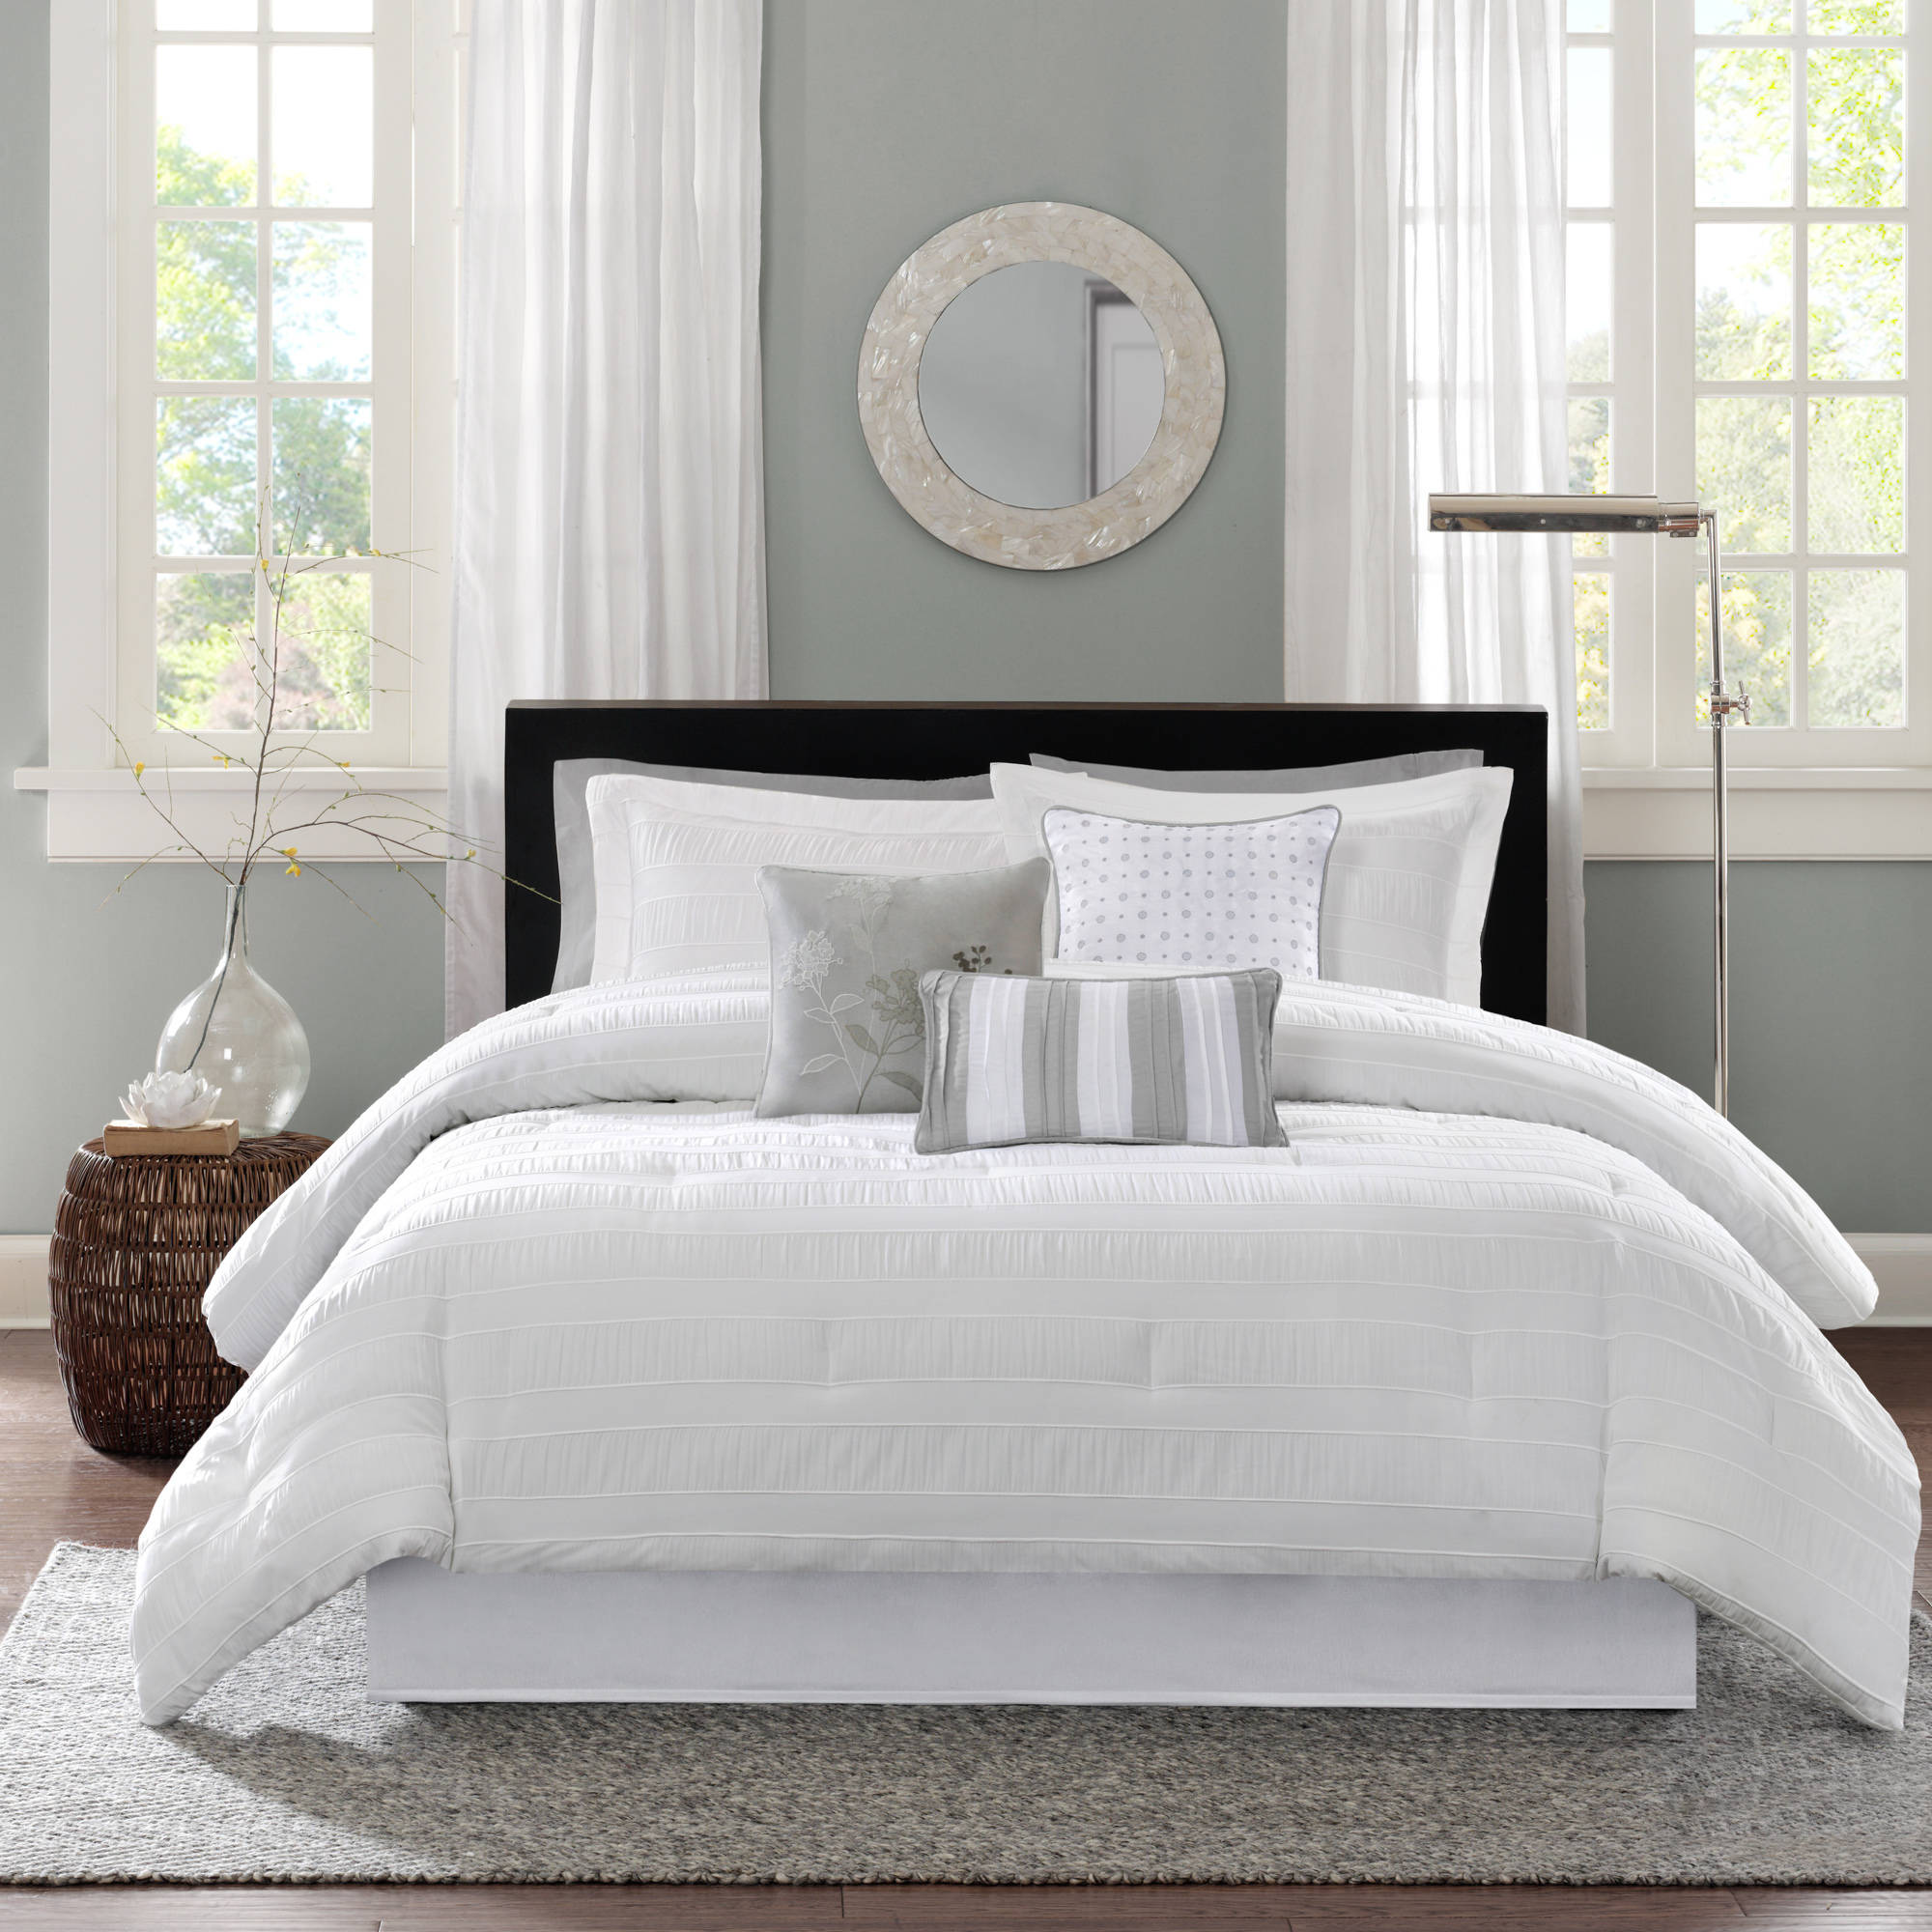 basic bath grey silver darcy piece bedding house white full and best elements twin comforter set allmodern gray hampton home modern cute of sets zone bed u reversible ashtonunderlyne down curtain excellent uncategorized s